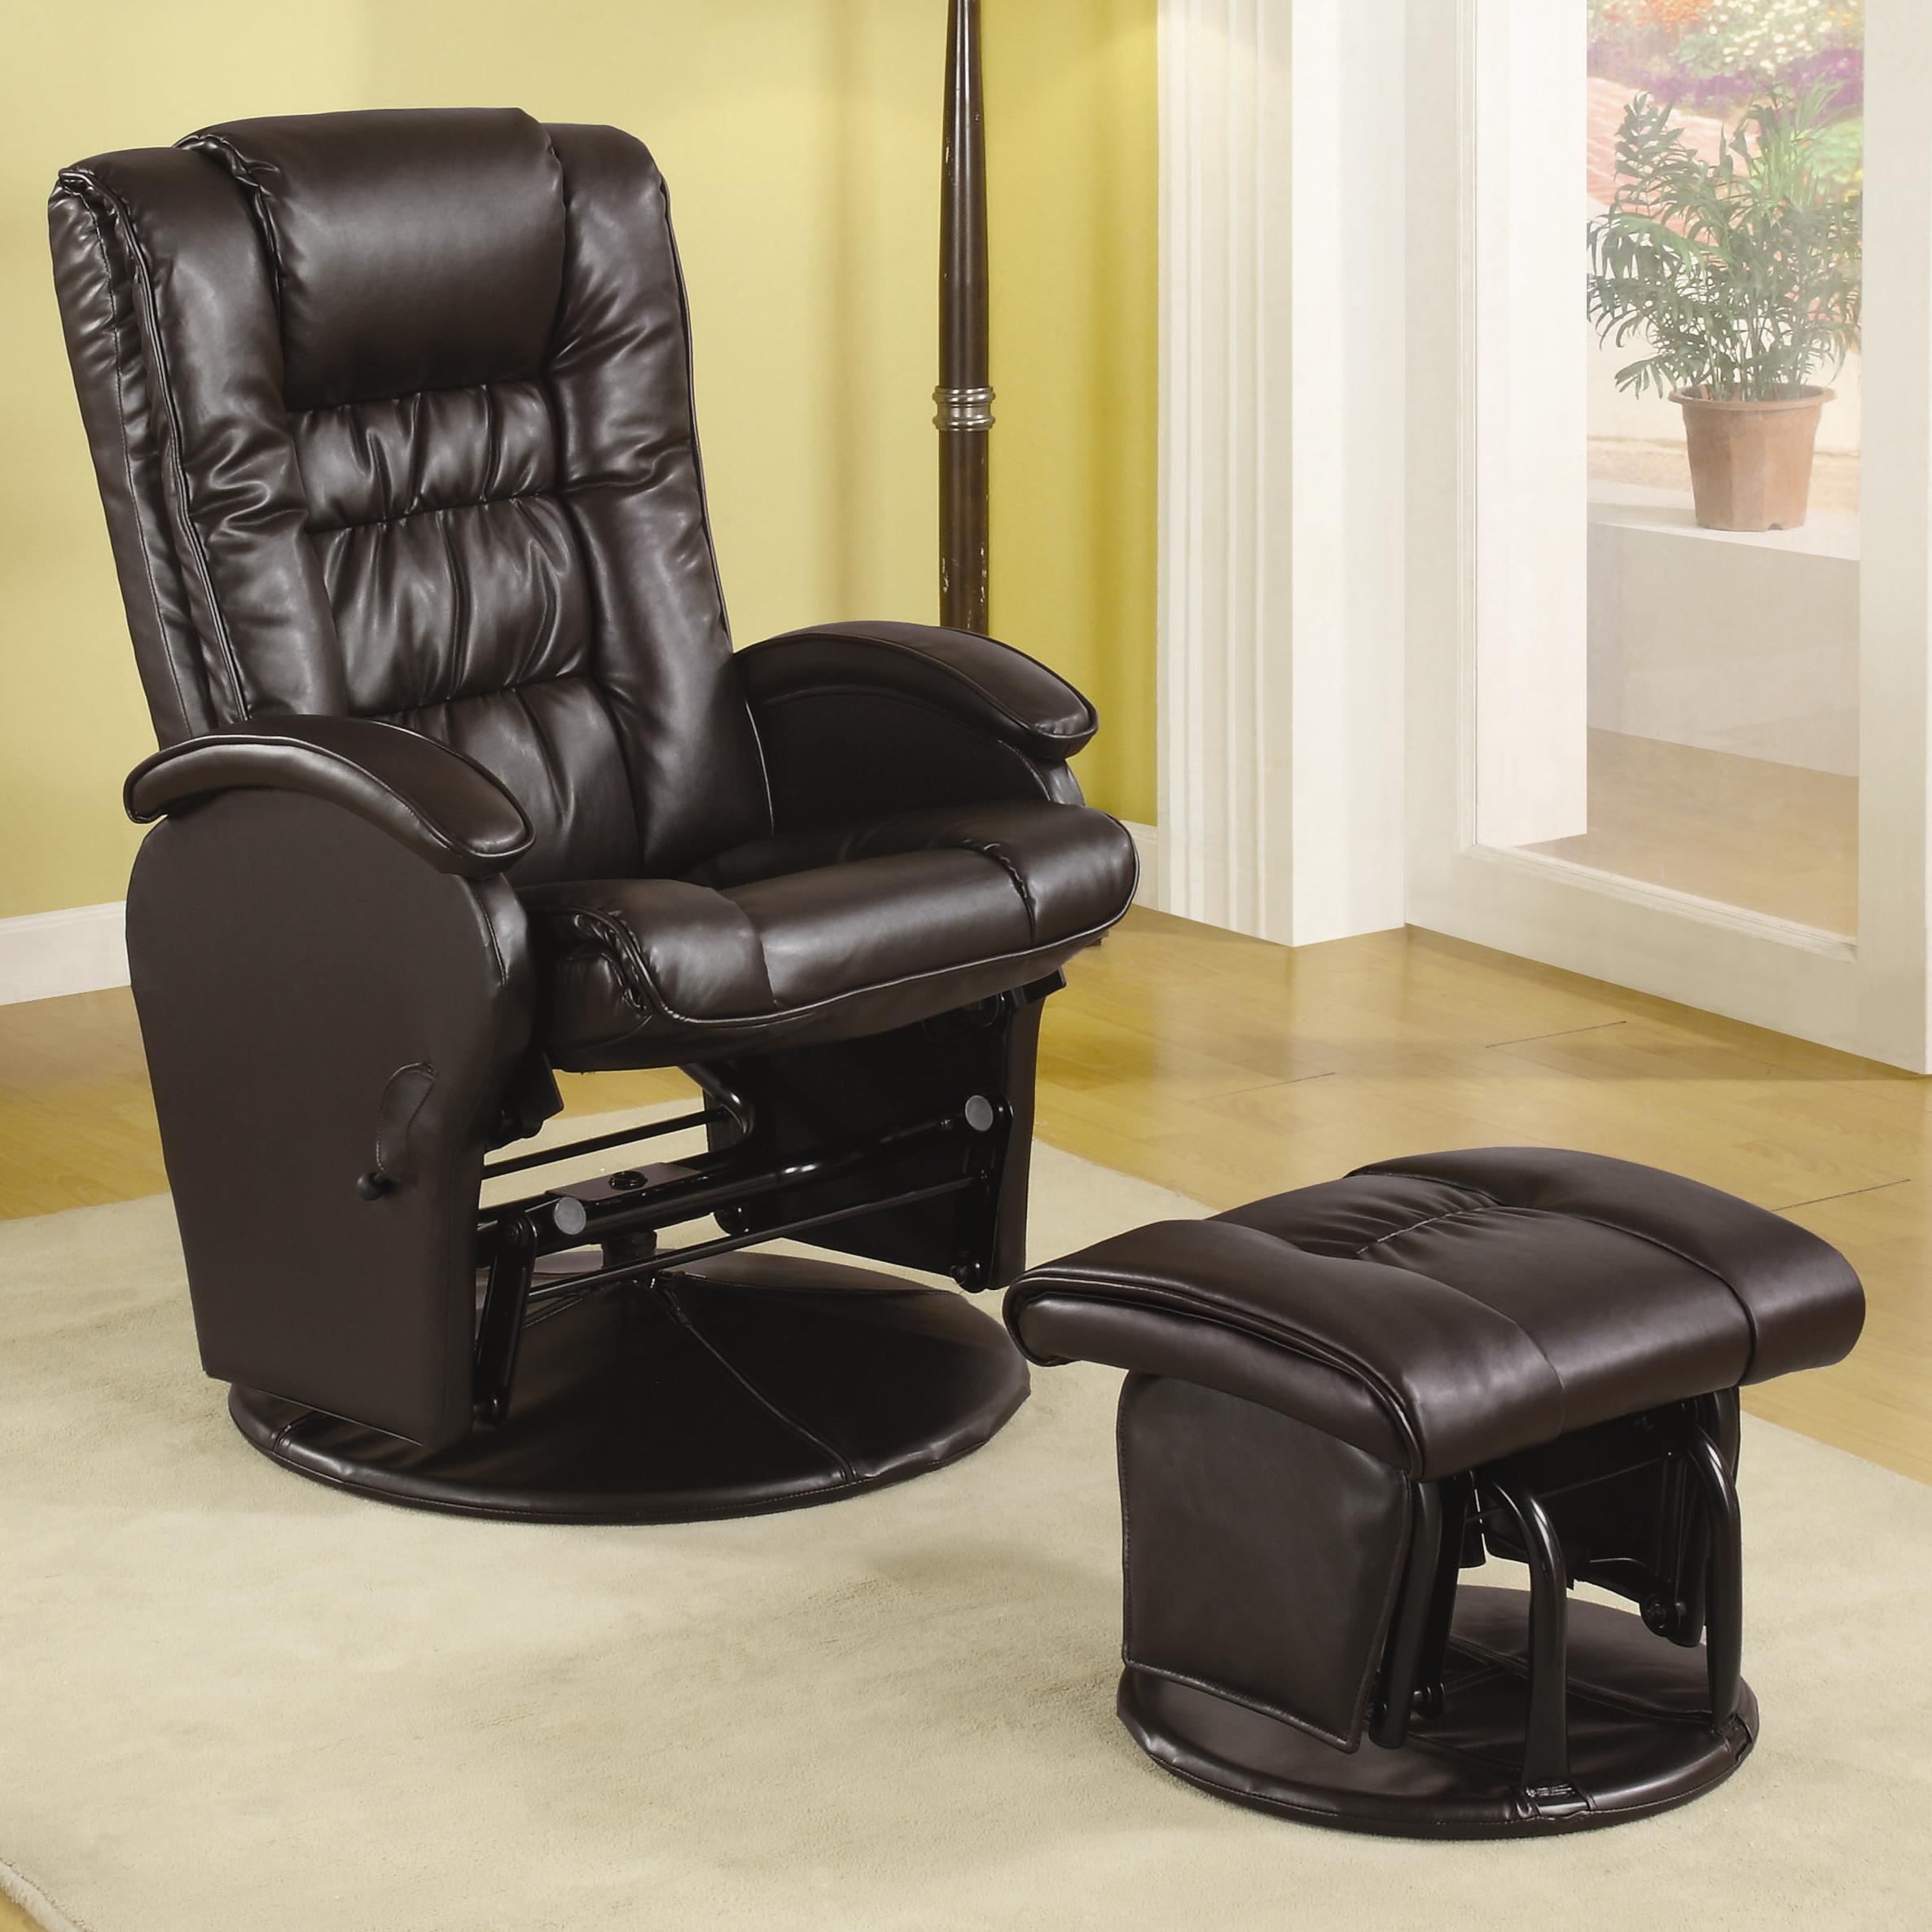 The Chair Outlet  Gliders and Rockers